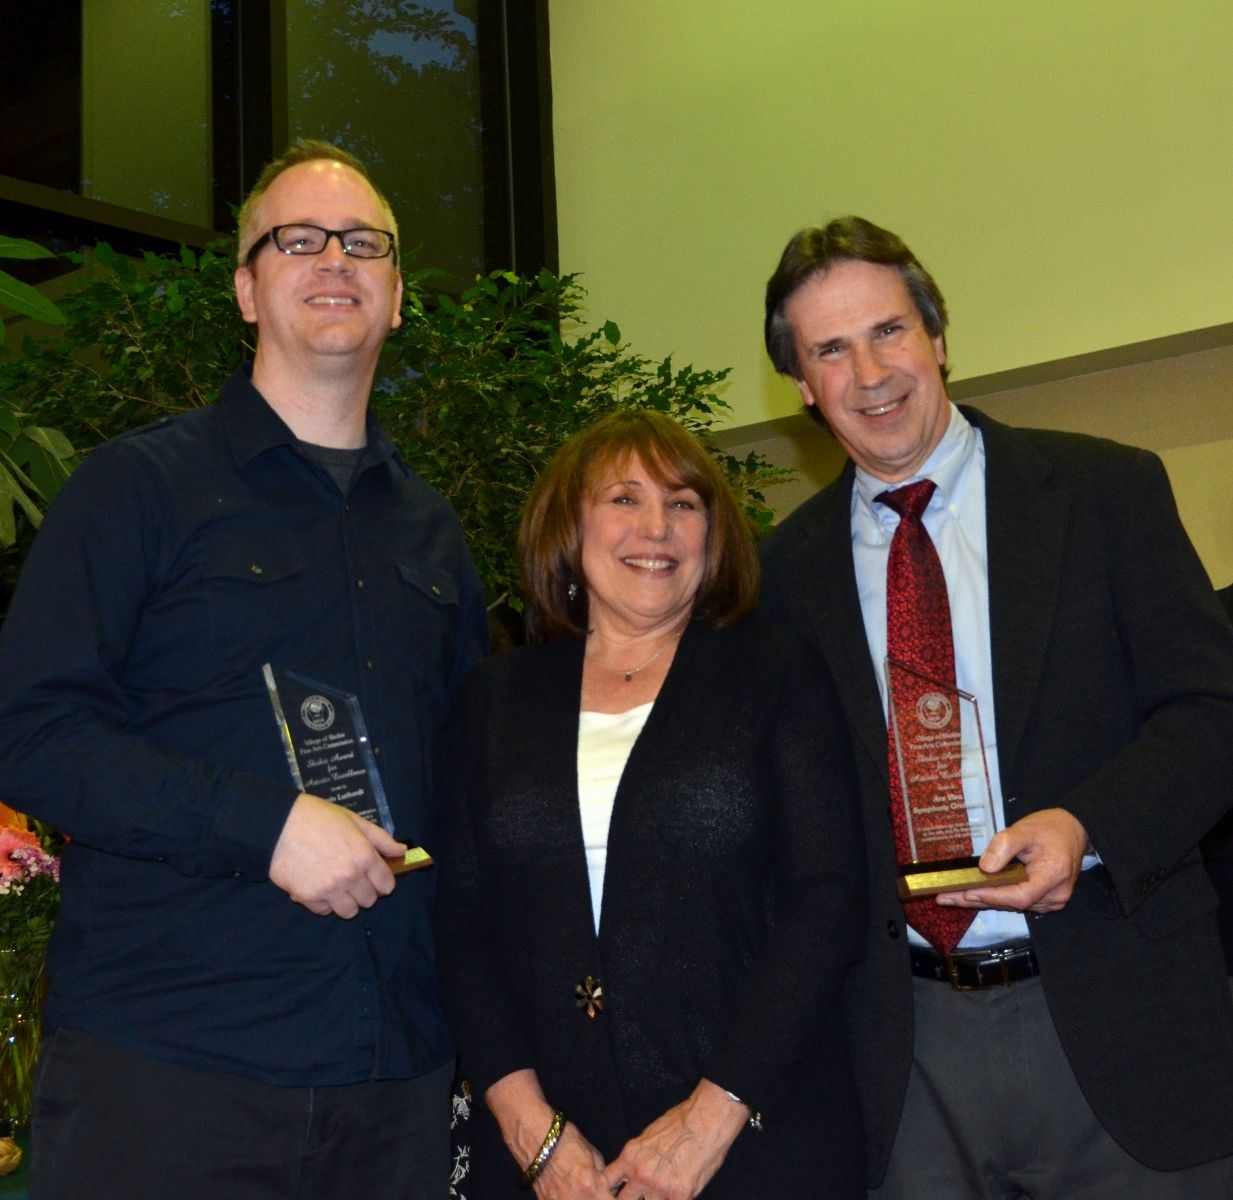 Kevin Luthardt and Alan Heatherington receiving award